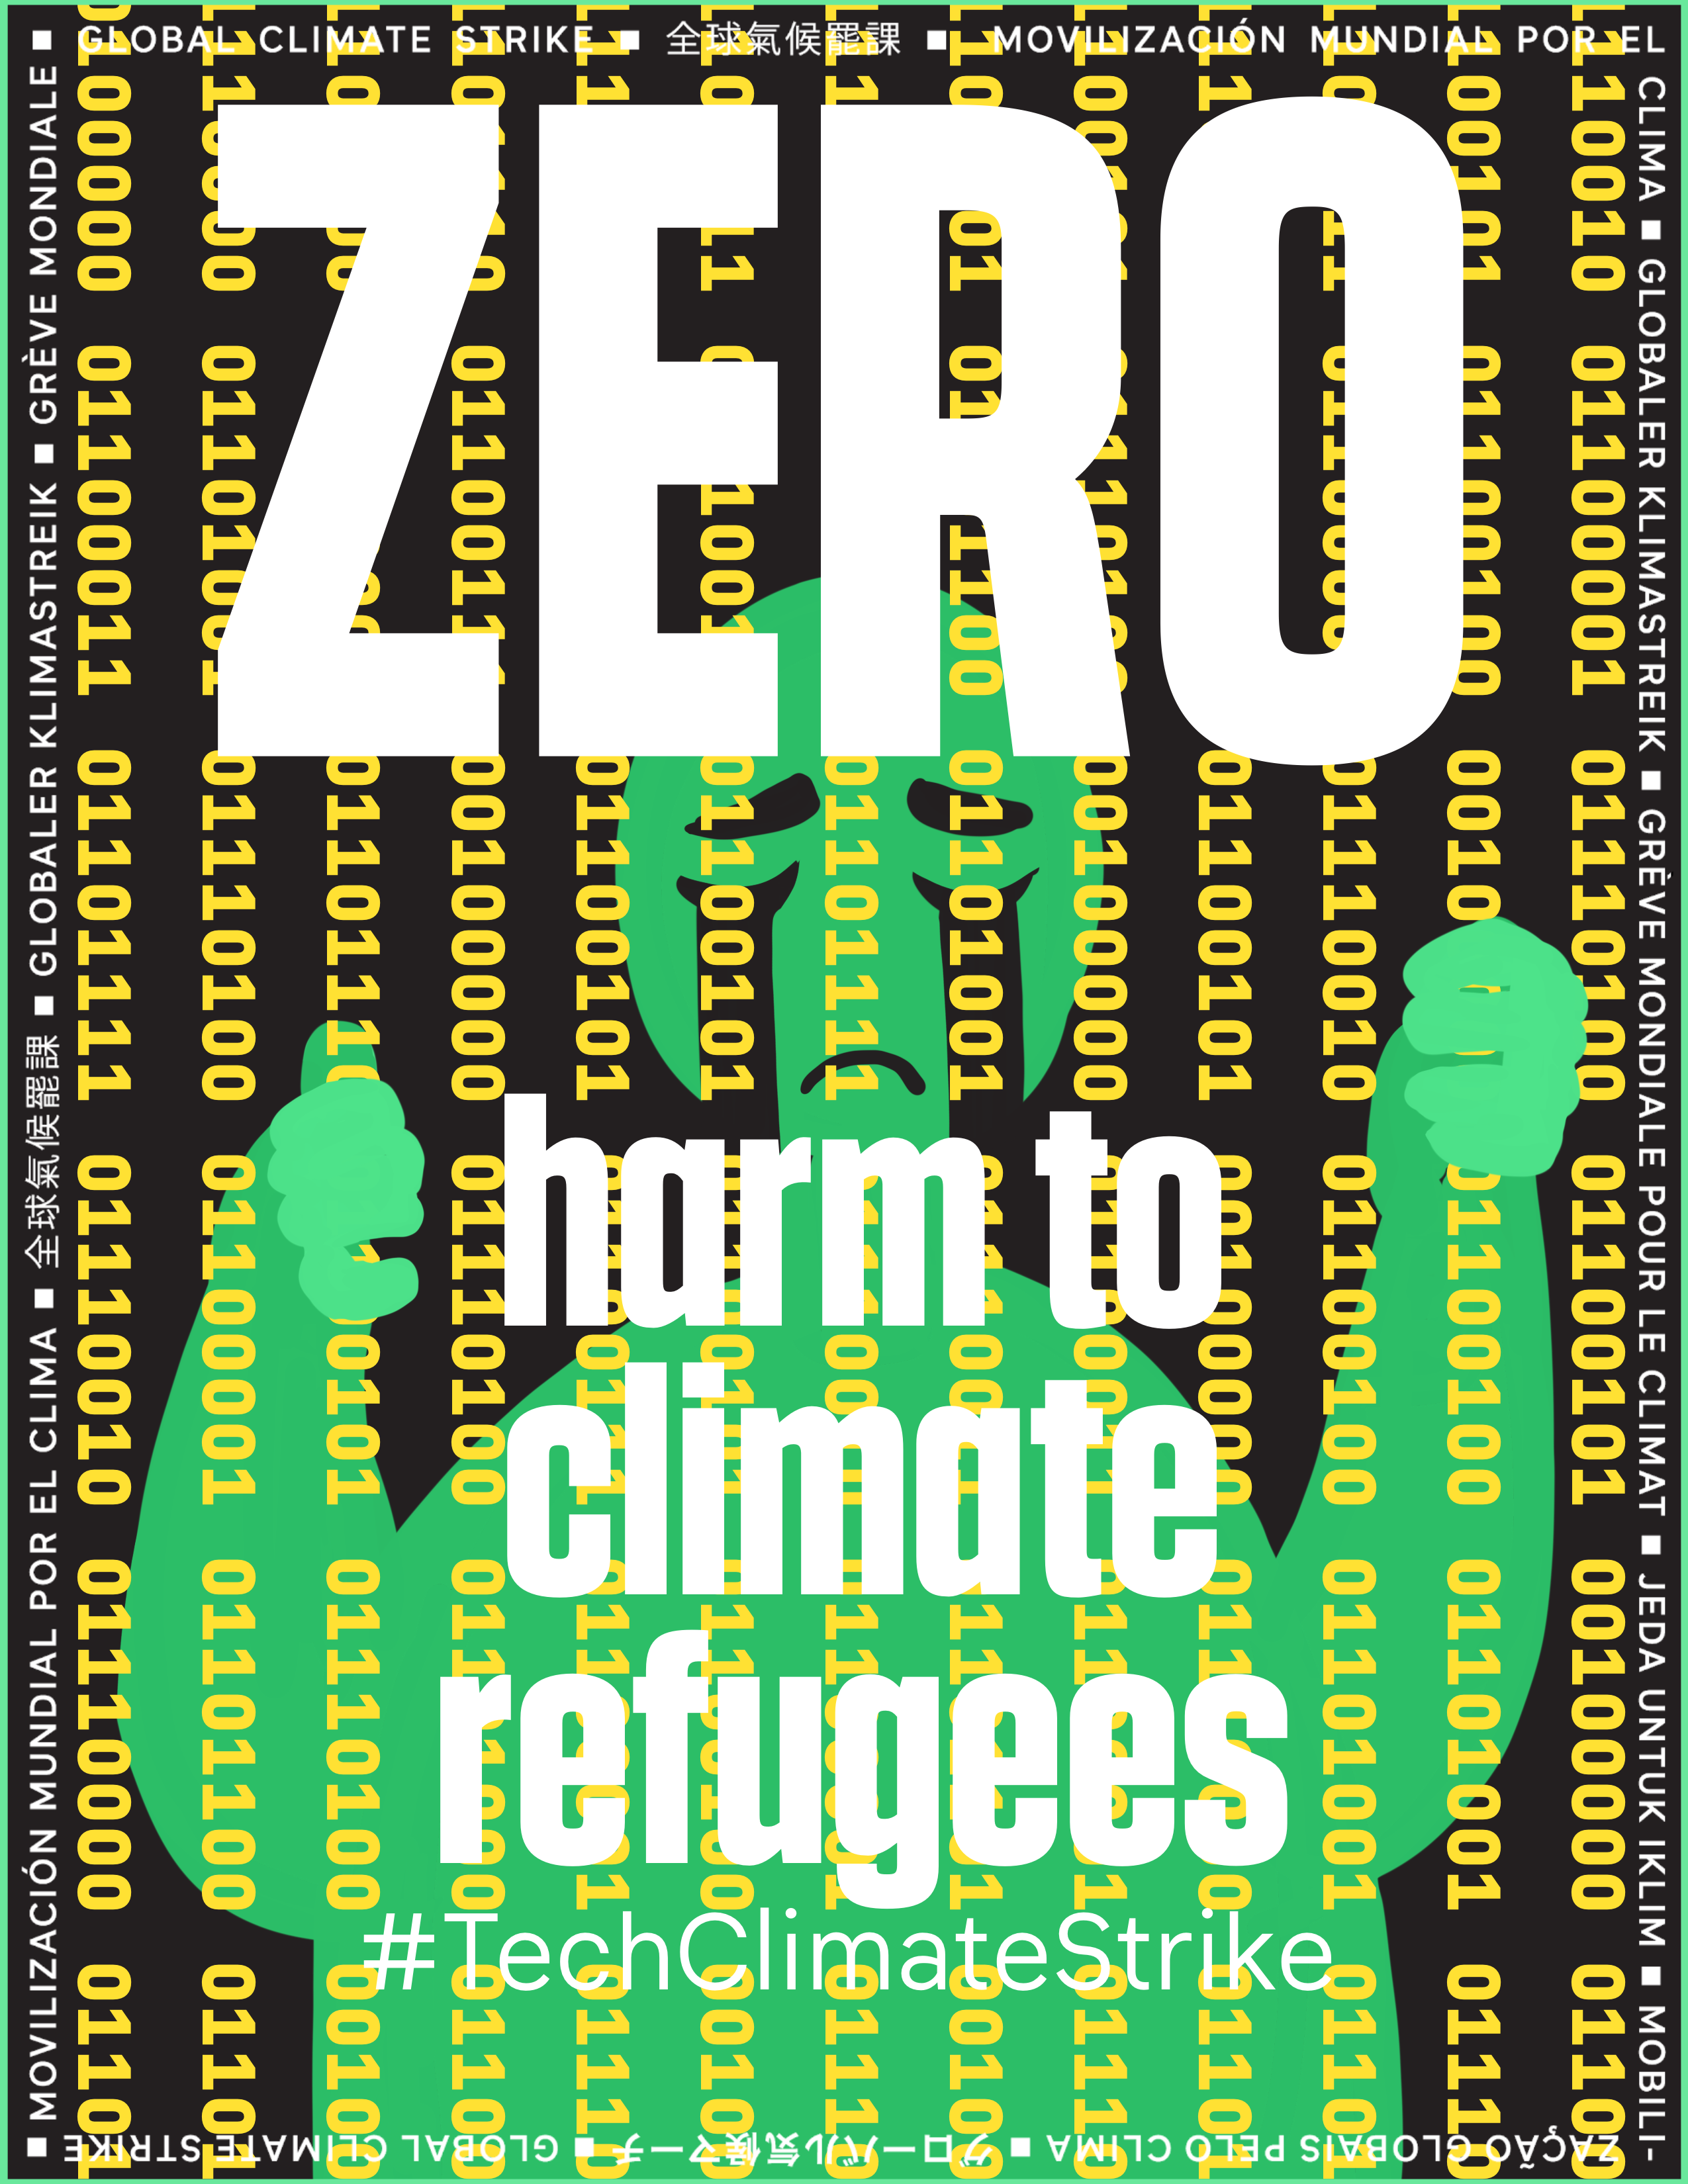 Zero harm to climate refugees and frontline communities